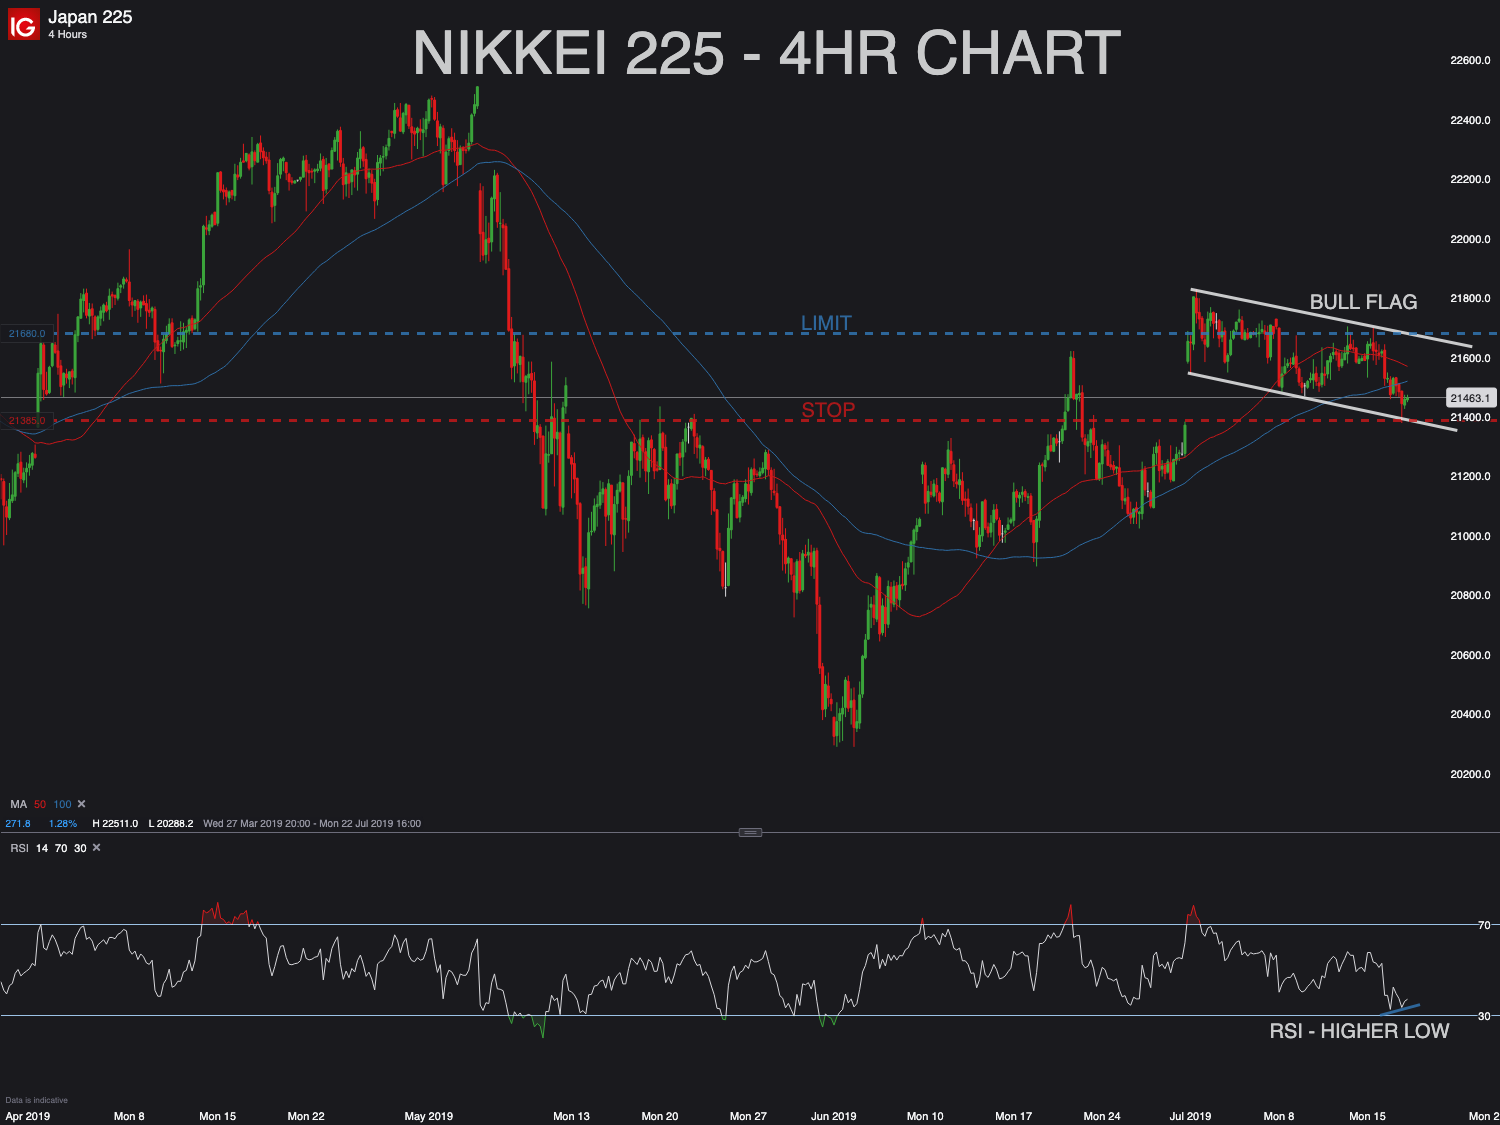 Possible trade on Nikkei 225 index